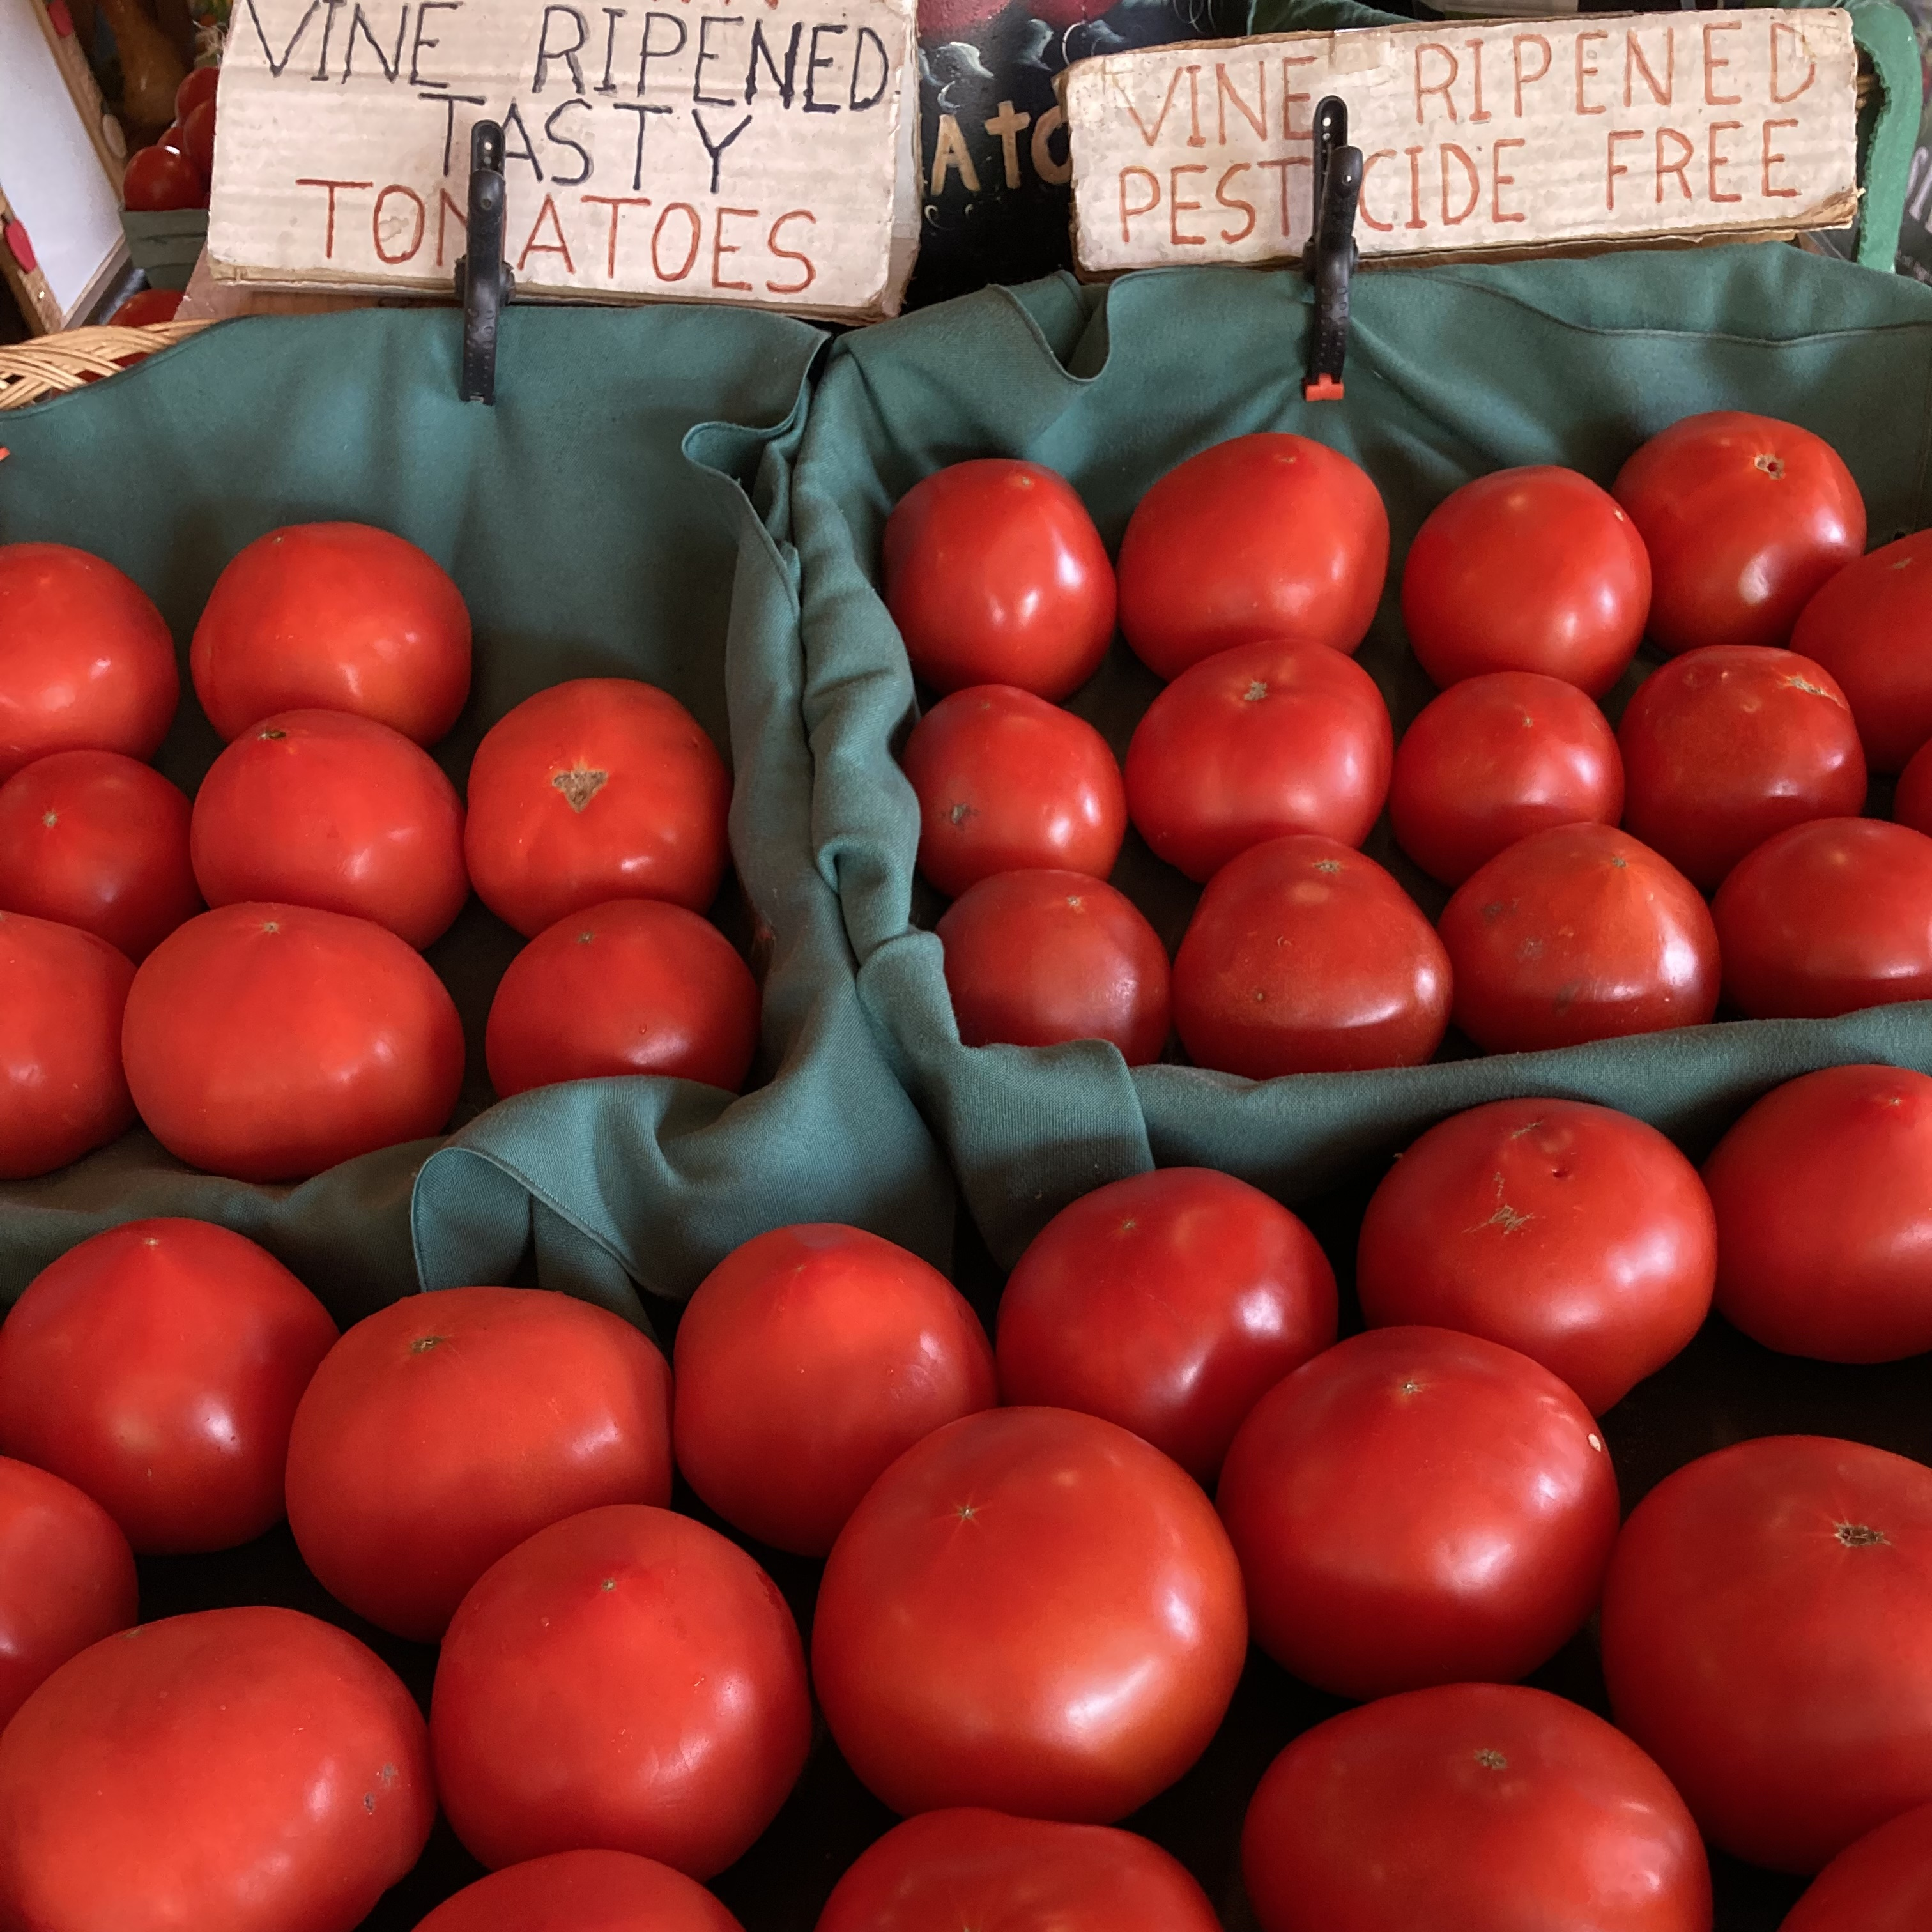 Stand of red tomatoes, with sign that says VINE RIPENED TASTY TOMATOES